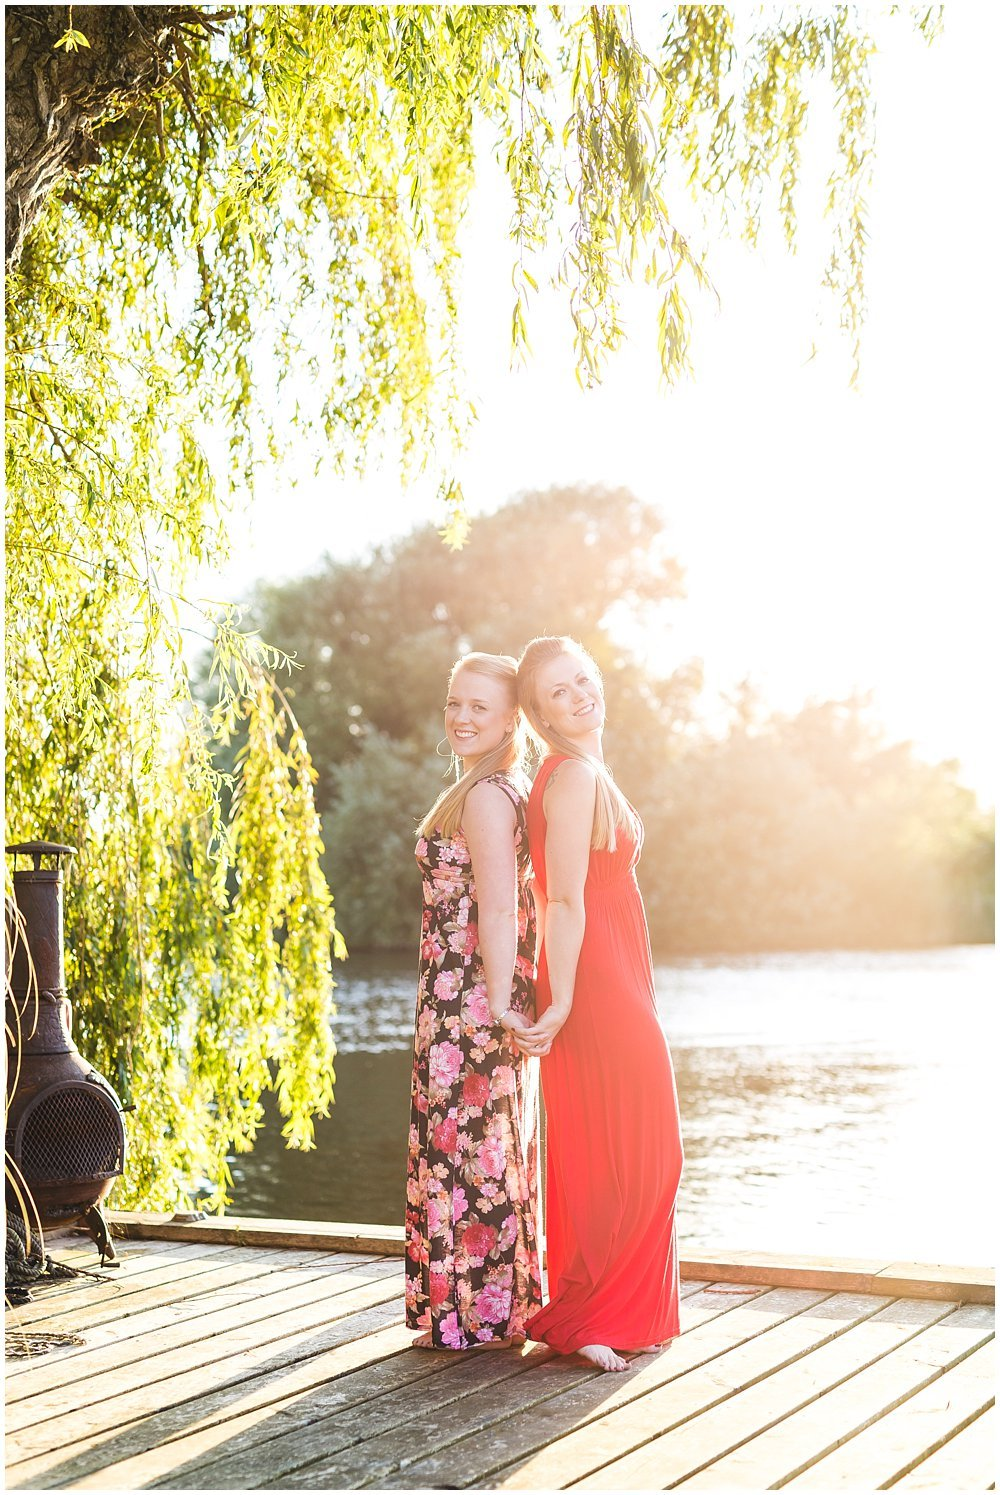 KERRI AND LAURA PORTRAIT SHOOT - NORFOLK PORTRAIT PHOTOGRAPHER